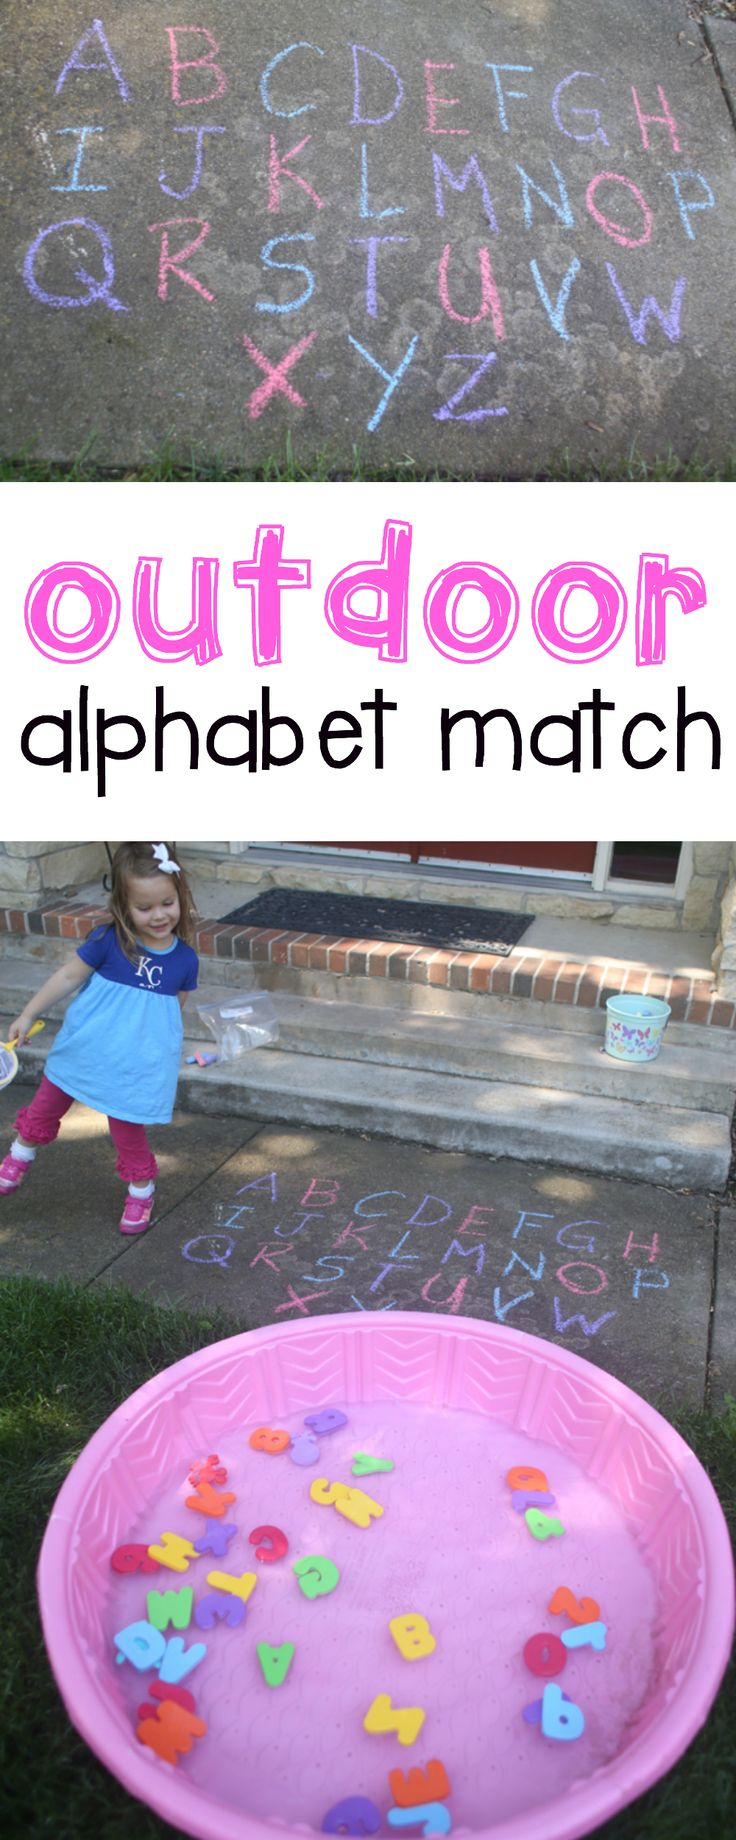 Outdoor Alphabet Match for Toddlers: Such a fun activity for teaching letter recognition to toddlers and preschoolers!